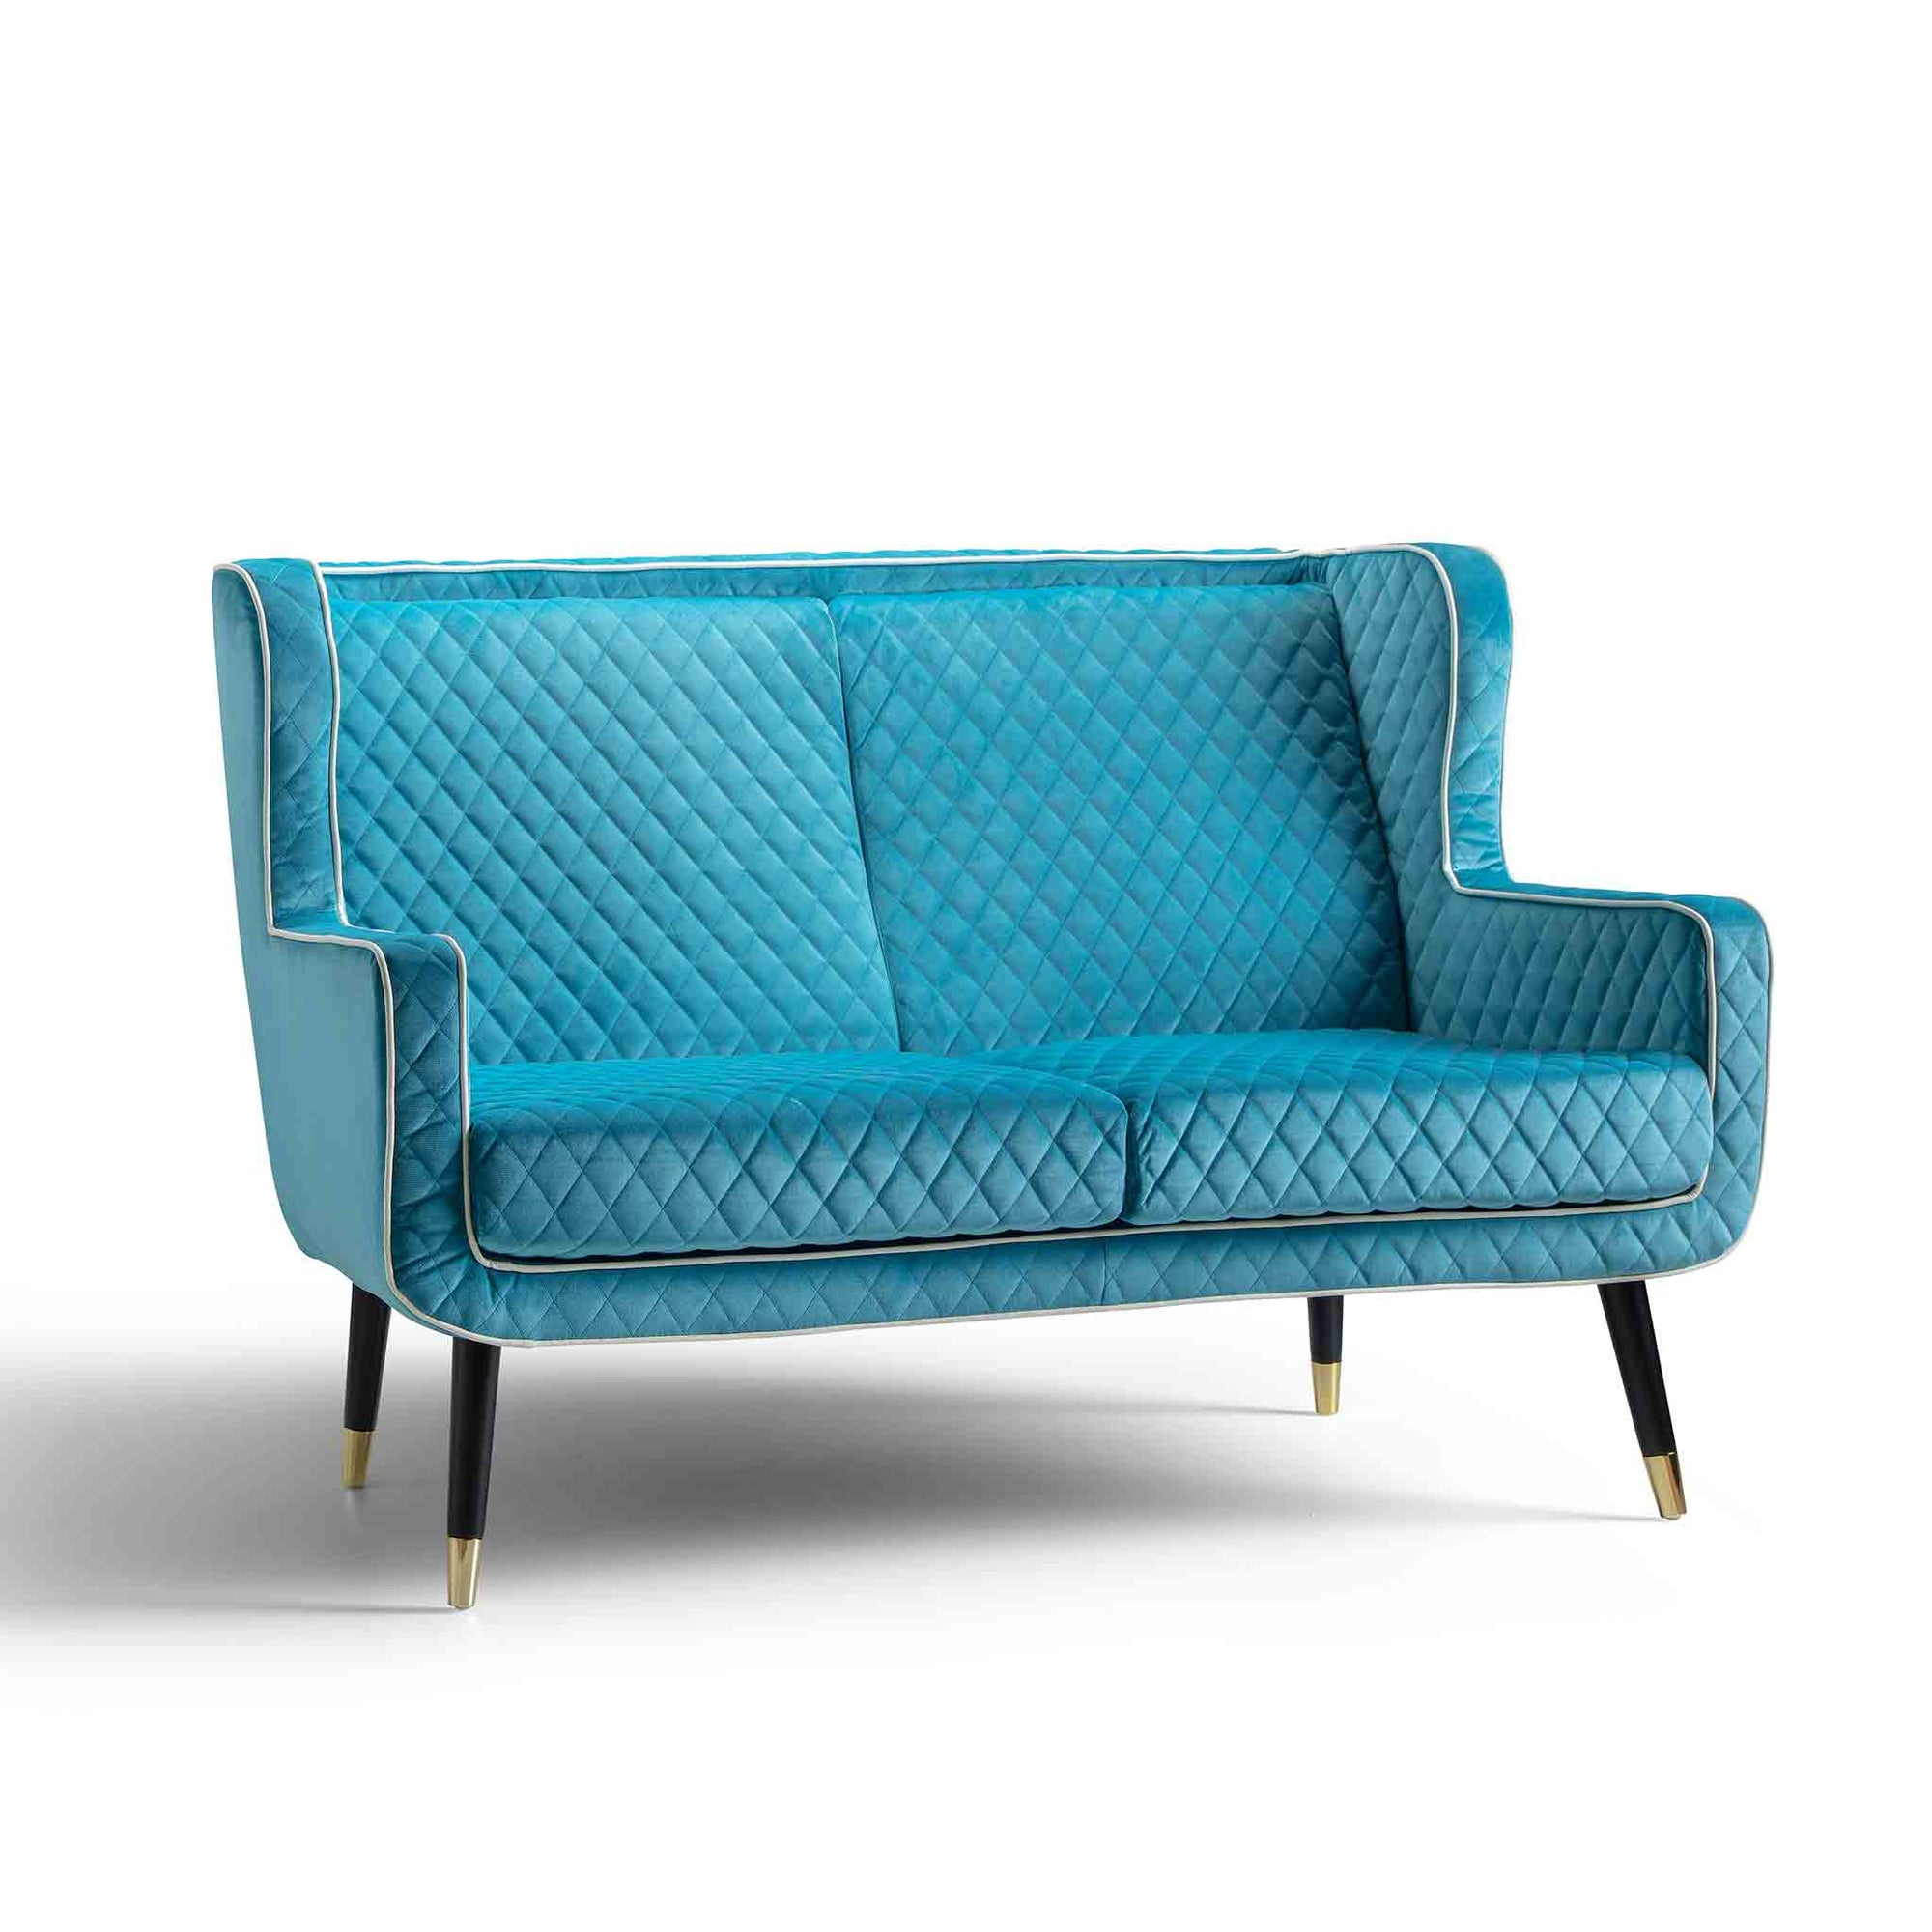 Monty Lagoon Blue Two Seater Chair from Roseland Furniture